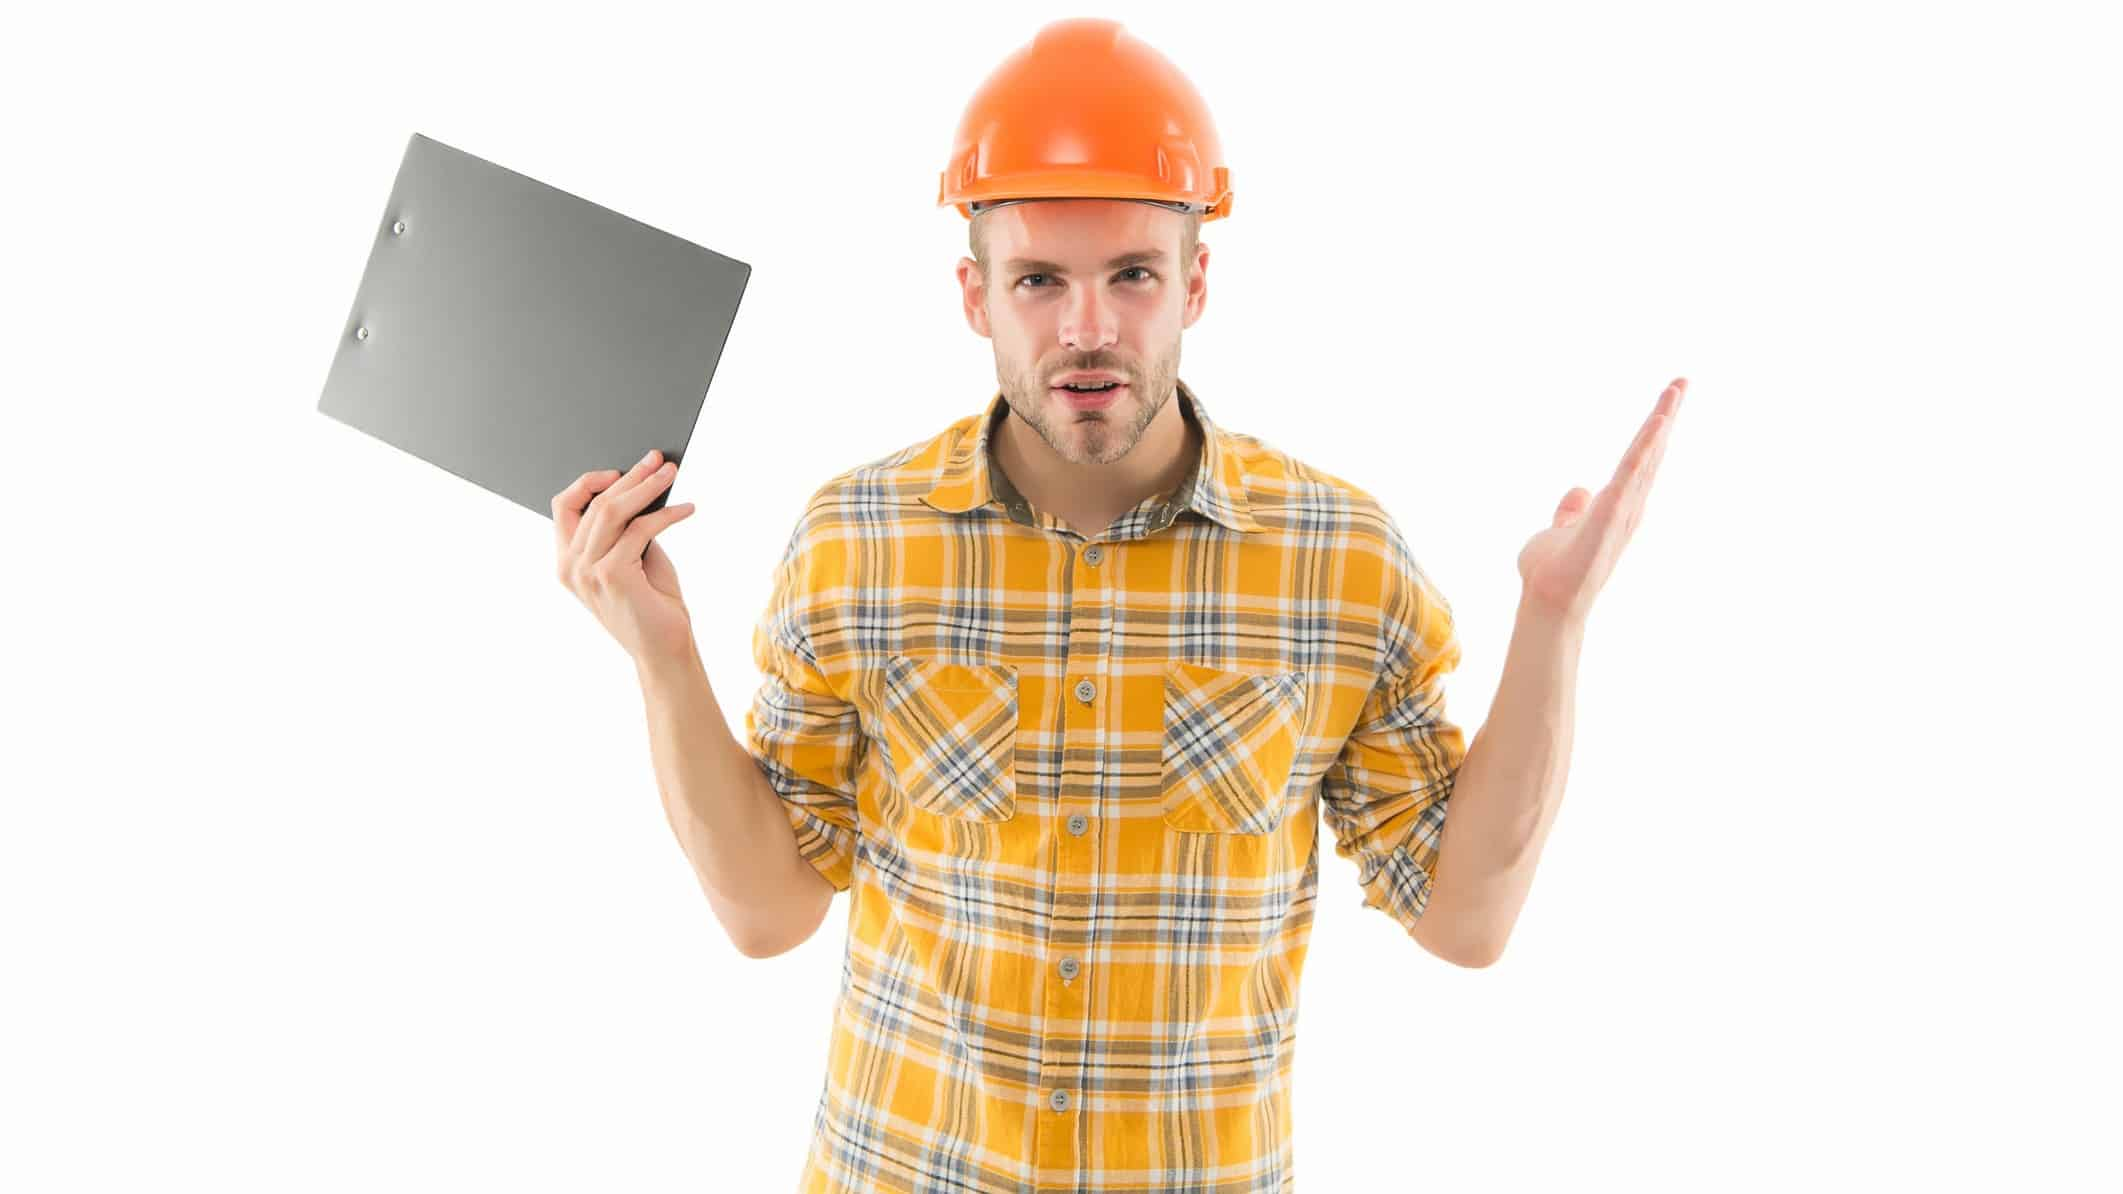 a man in a hard hat and checkered shirt holds paperwork in one hand as he holds his hands upwards in an enquiring manner as though asking a question or exasperated by uncertainty.